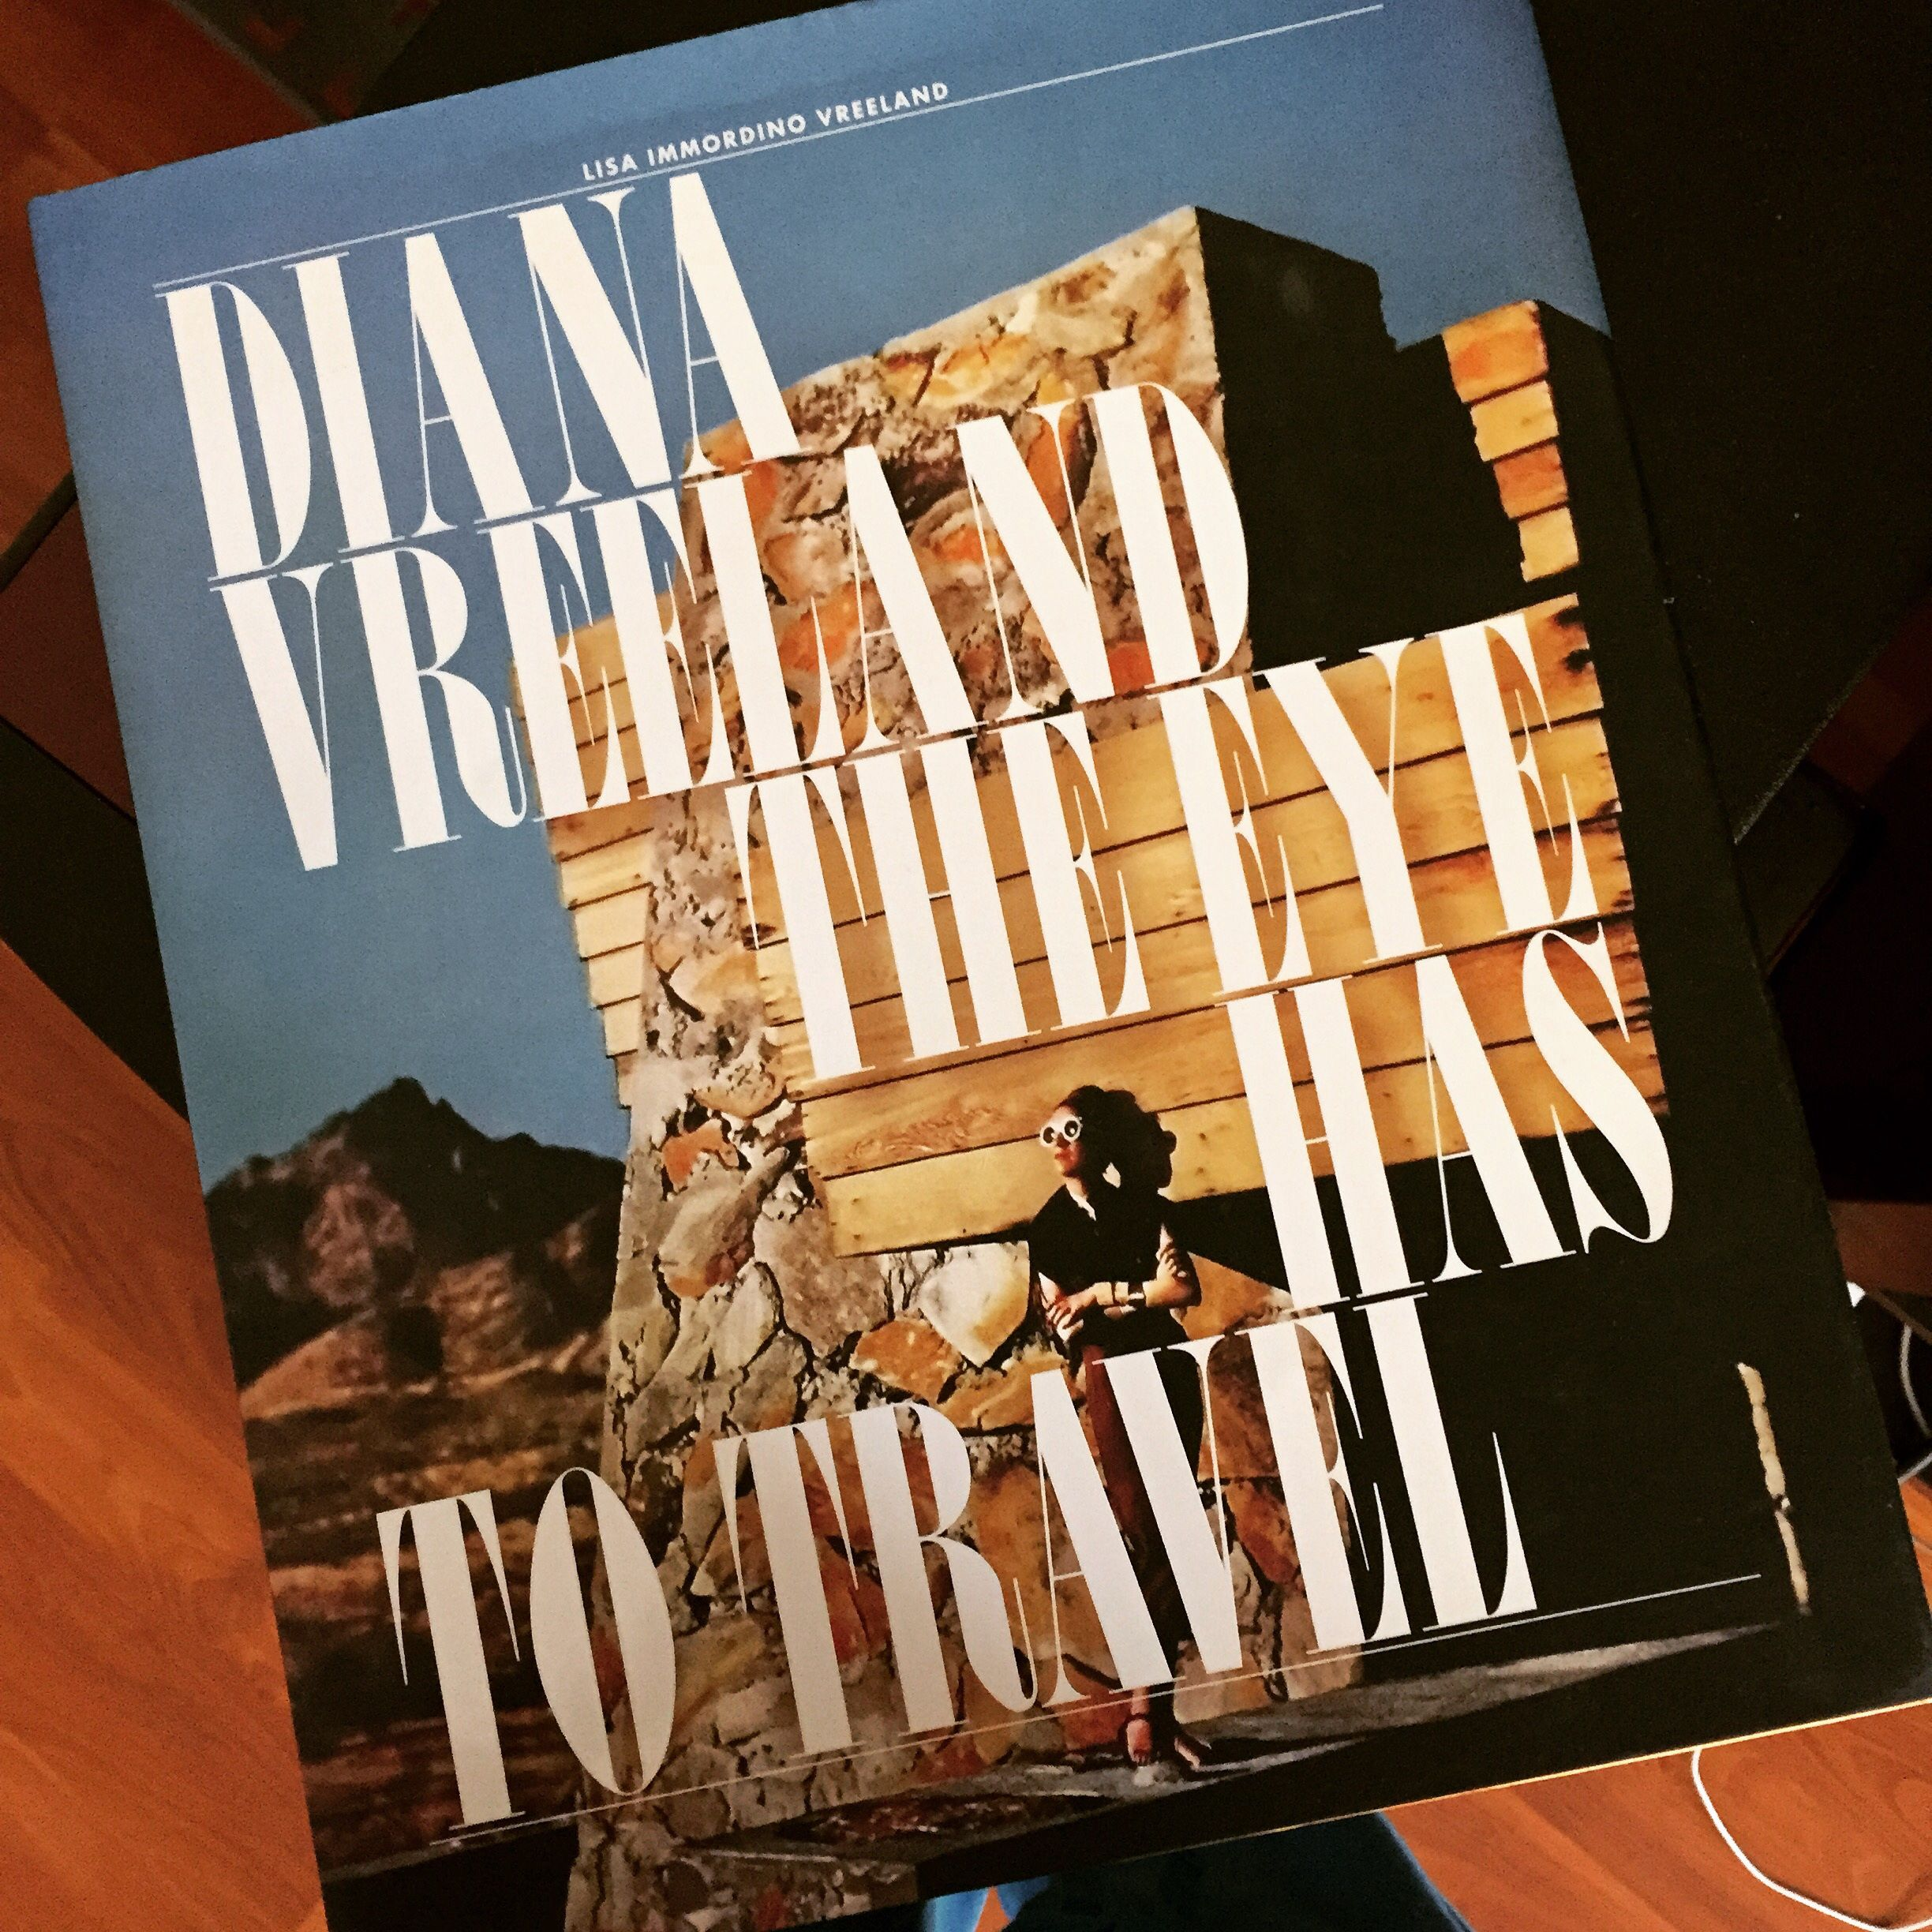 Books we read #DianaVreeland,  #Fatimbahh